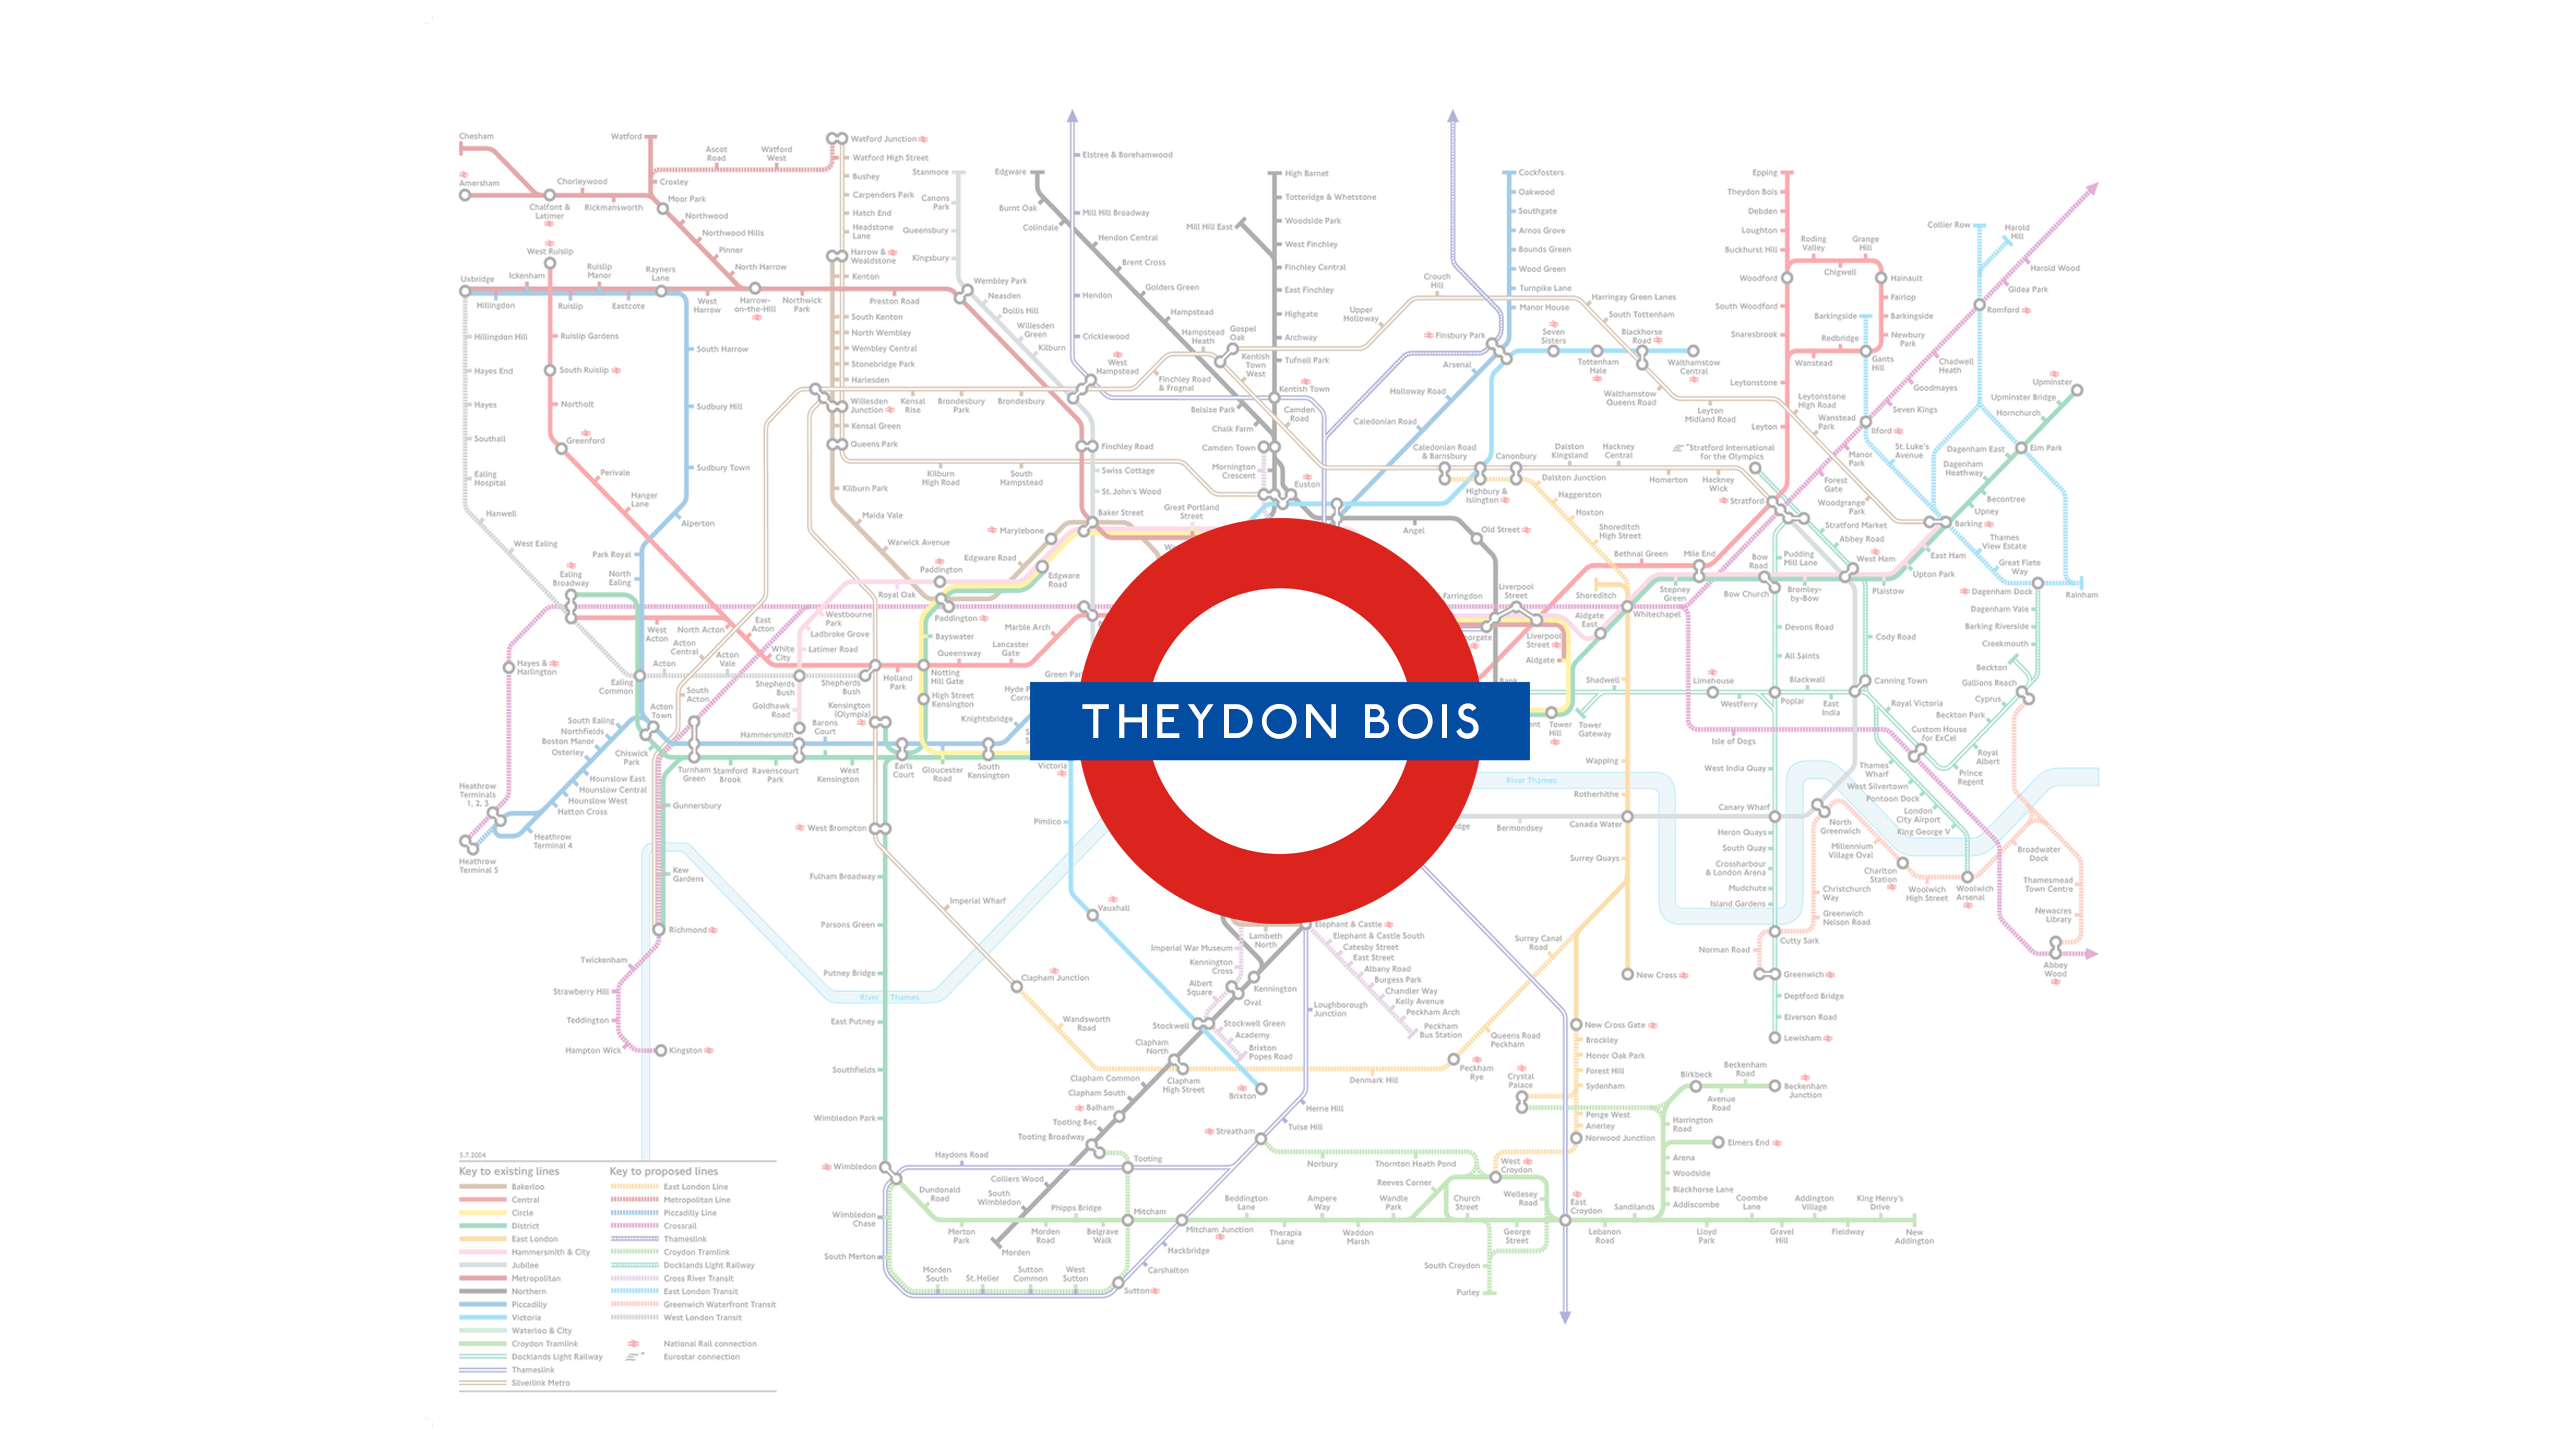 Theydon Bois (Map)